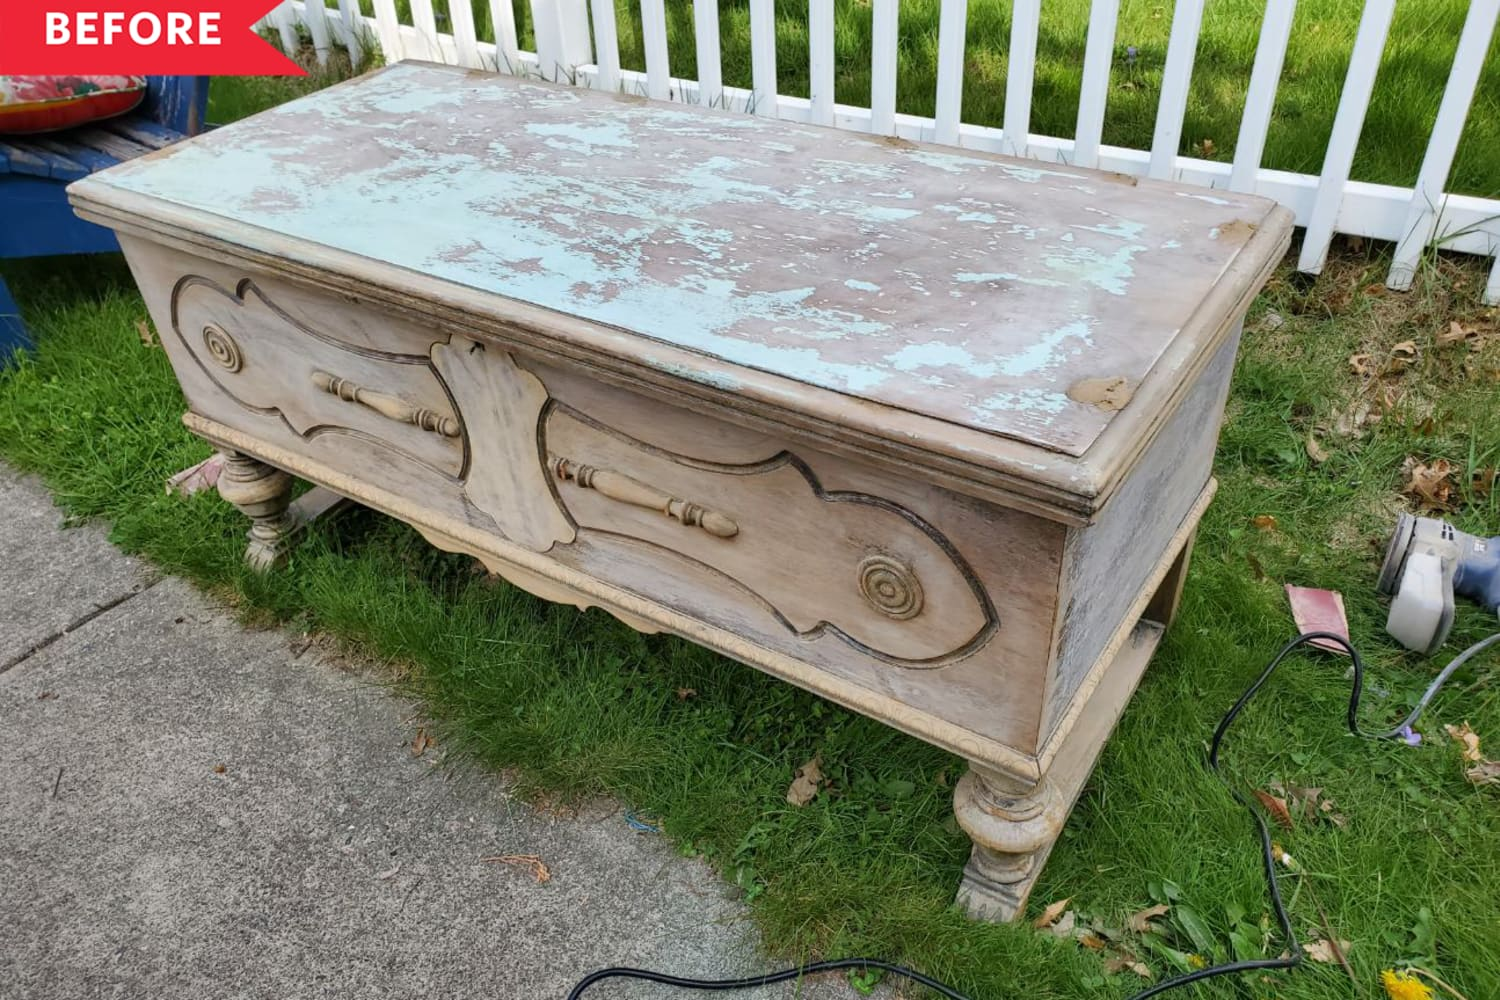 Before and After: A Family Heirloom Cedar Chest Gets a Fresh New Life